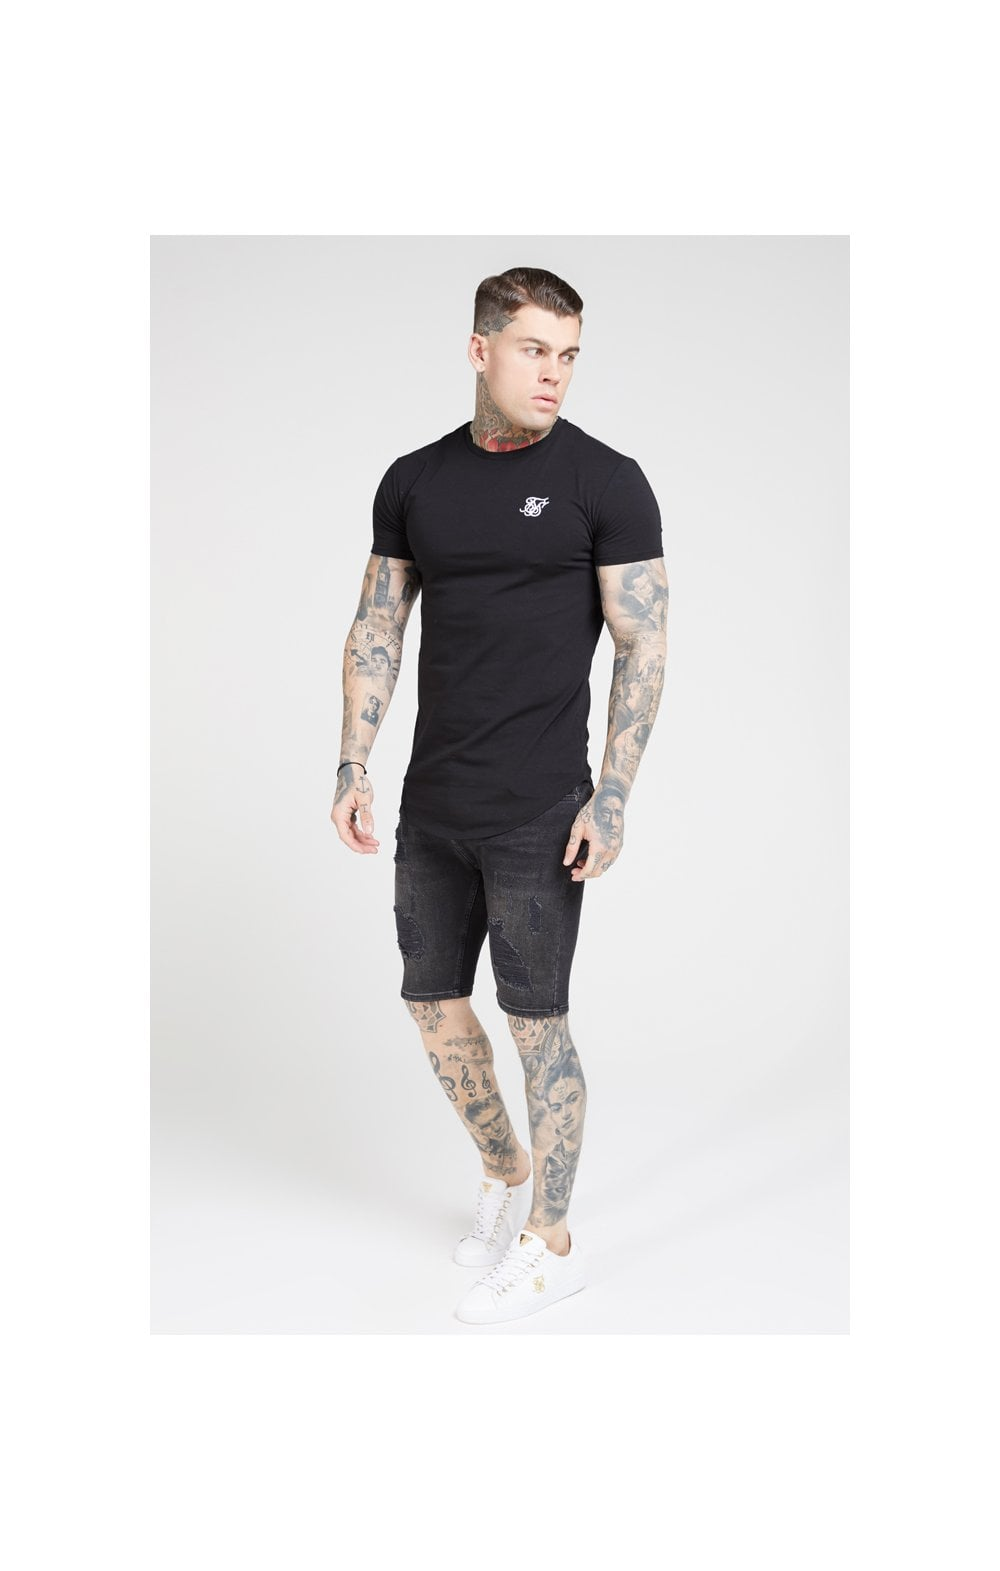 SikSilk S/S Core Gym Tee – Jet Black (2)